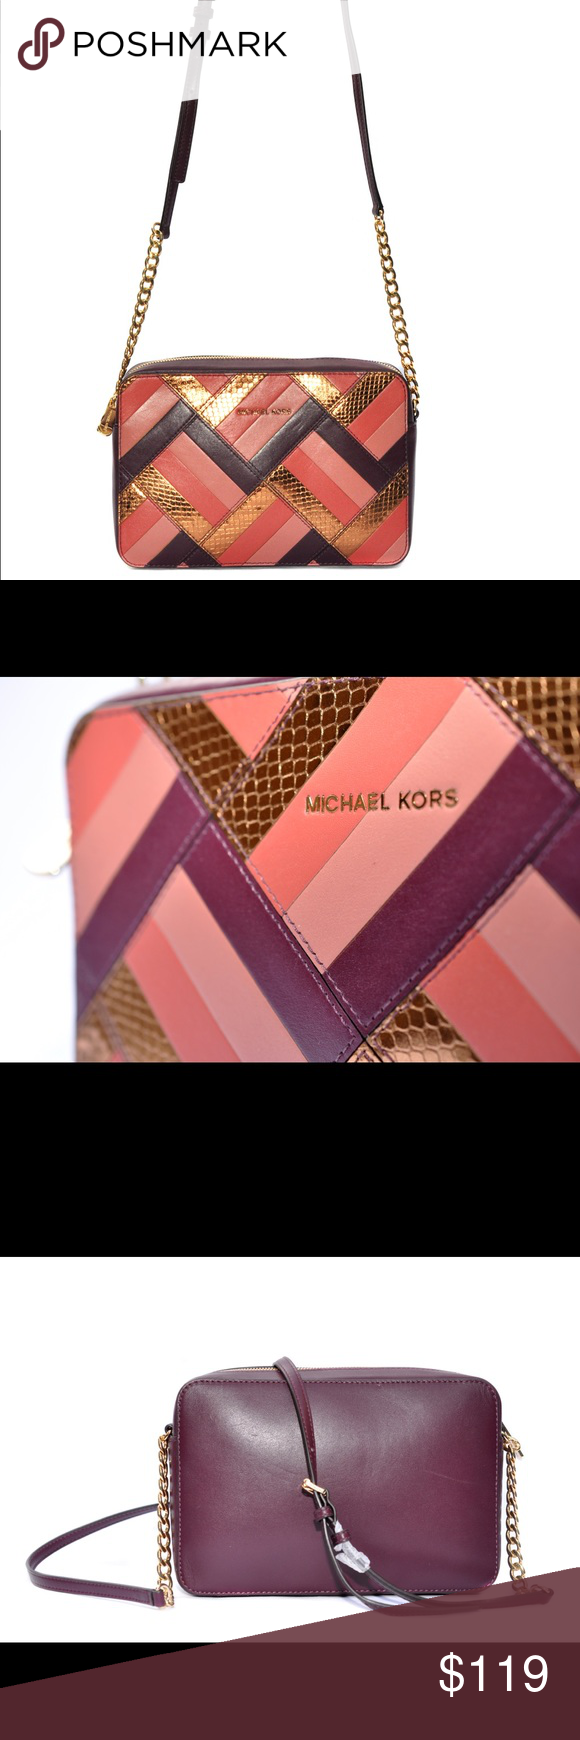 a639e2ee41ad Michael Kors Marquetry Patchwork jet set travel Michael Kors Marquetry  Patchwork jet set travel east west